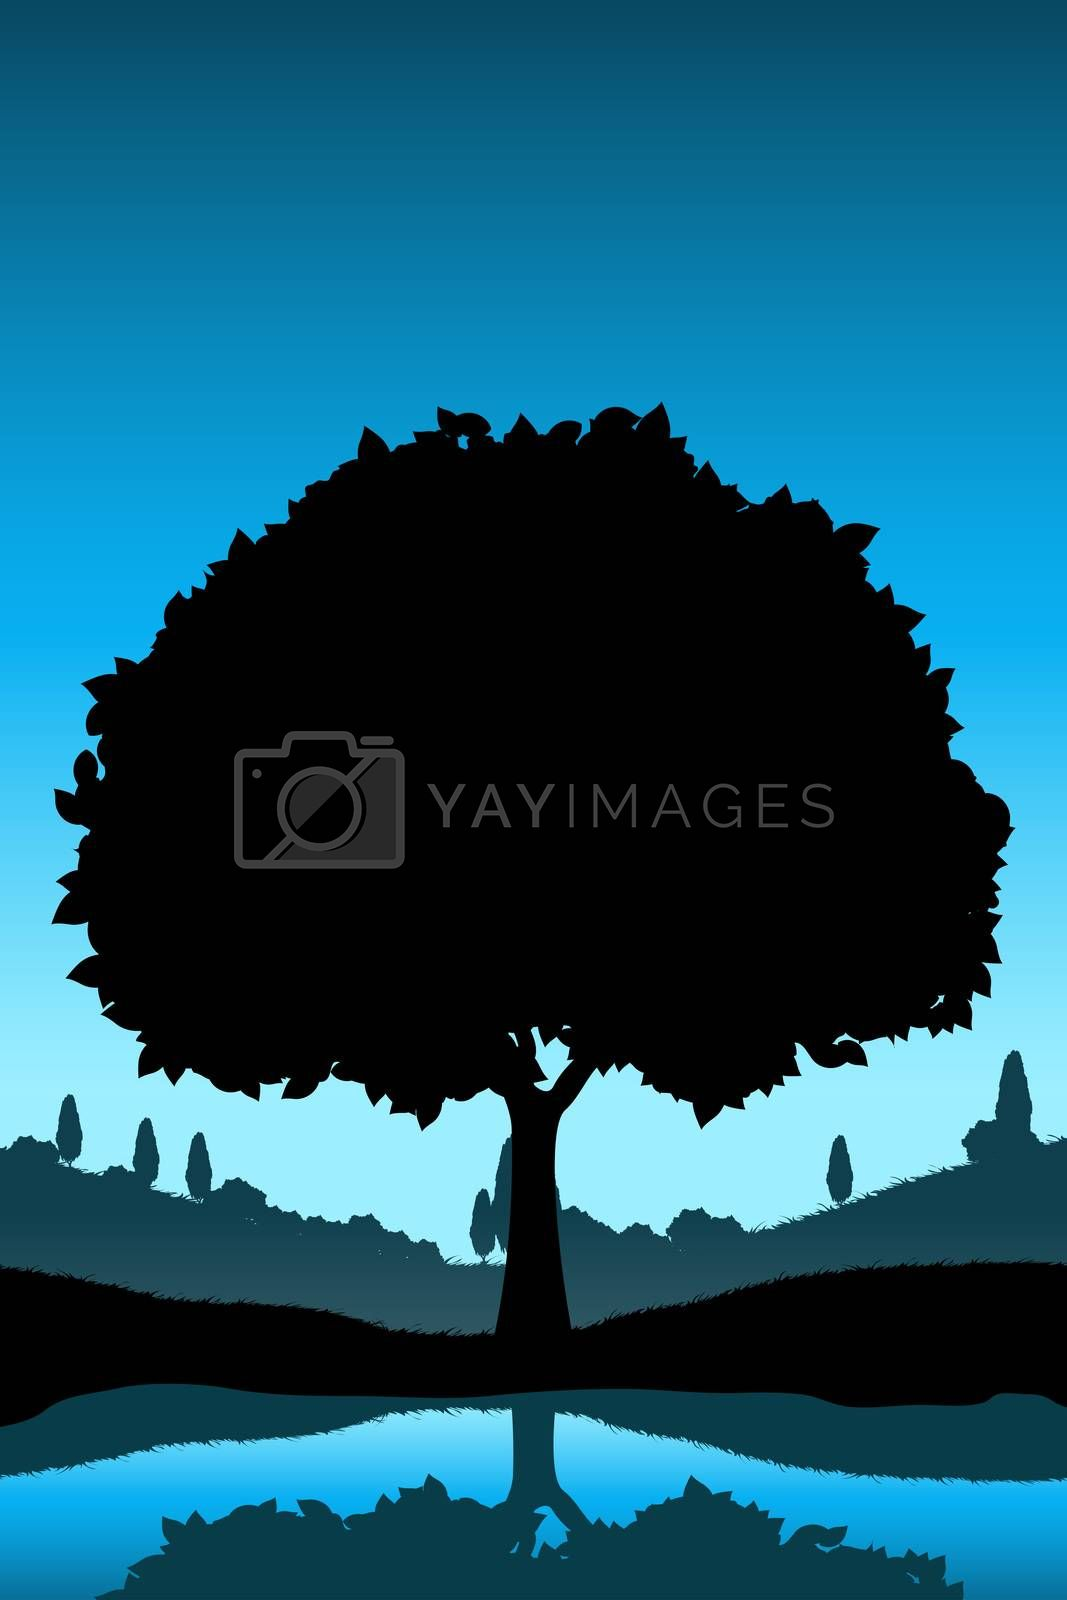 Nature Landscape with Tree Silhouette by WaD